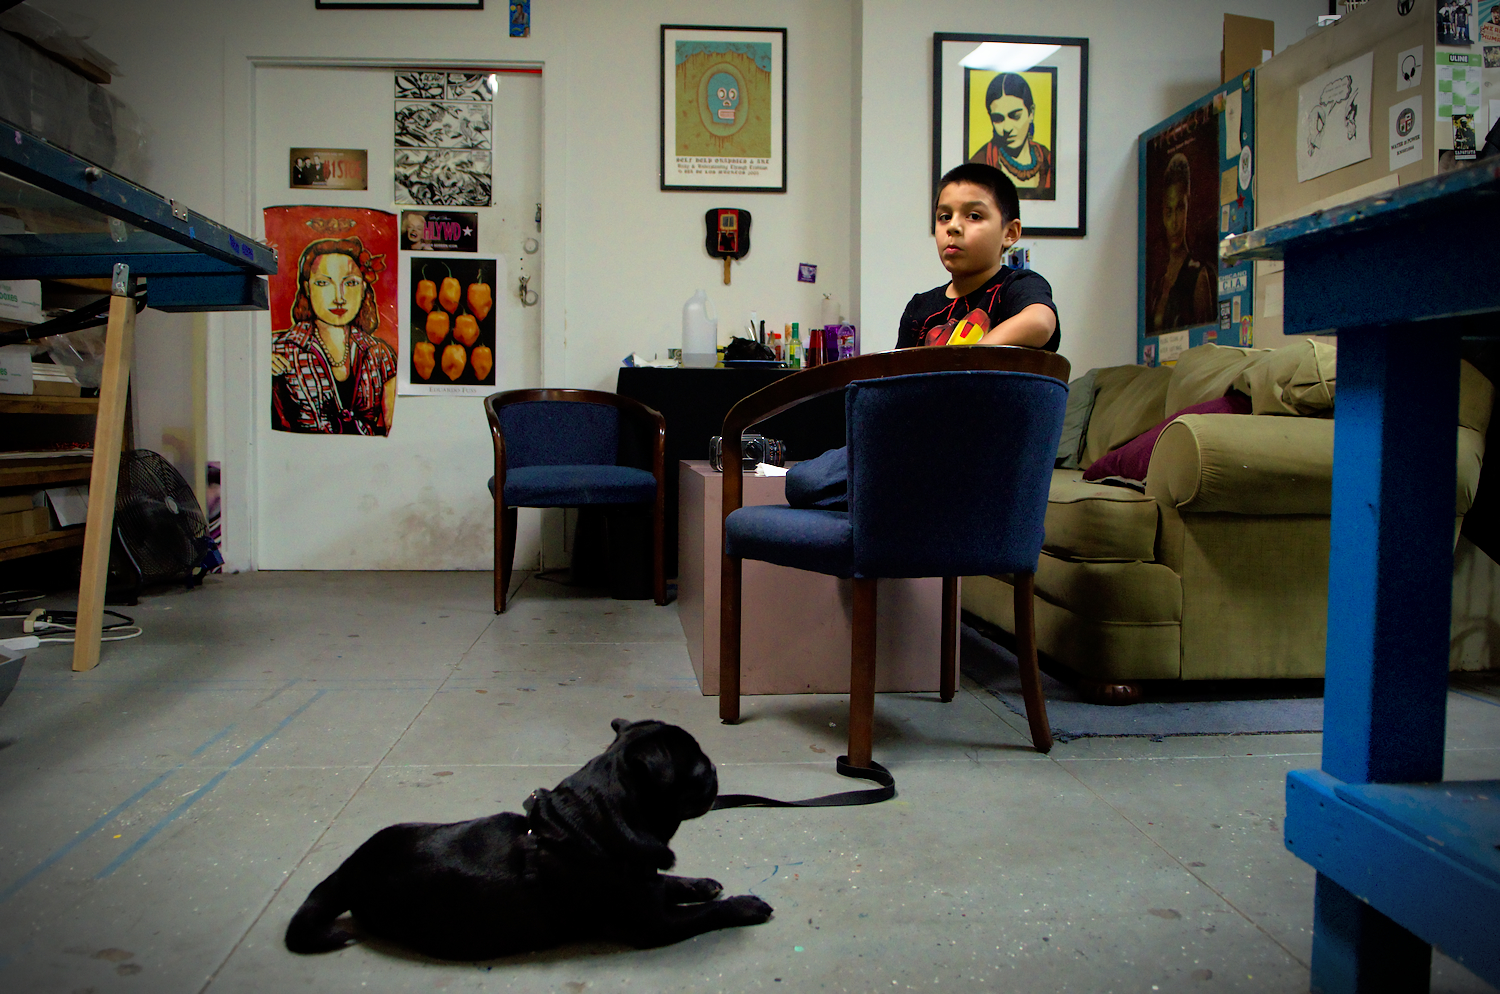 This young boy is the grandson of Jose Alpuche, the Self Help Graphics printmaster. He regularly visits his grand father, and is already creating his own screen prints. His own father works as a printer at Modern Multiples, another collaborative studio a few blocks away.